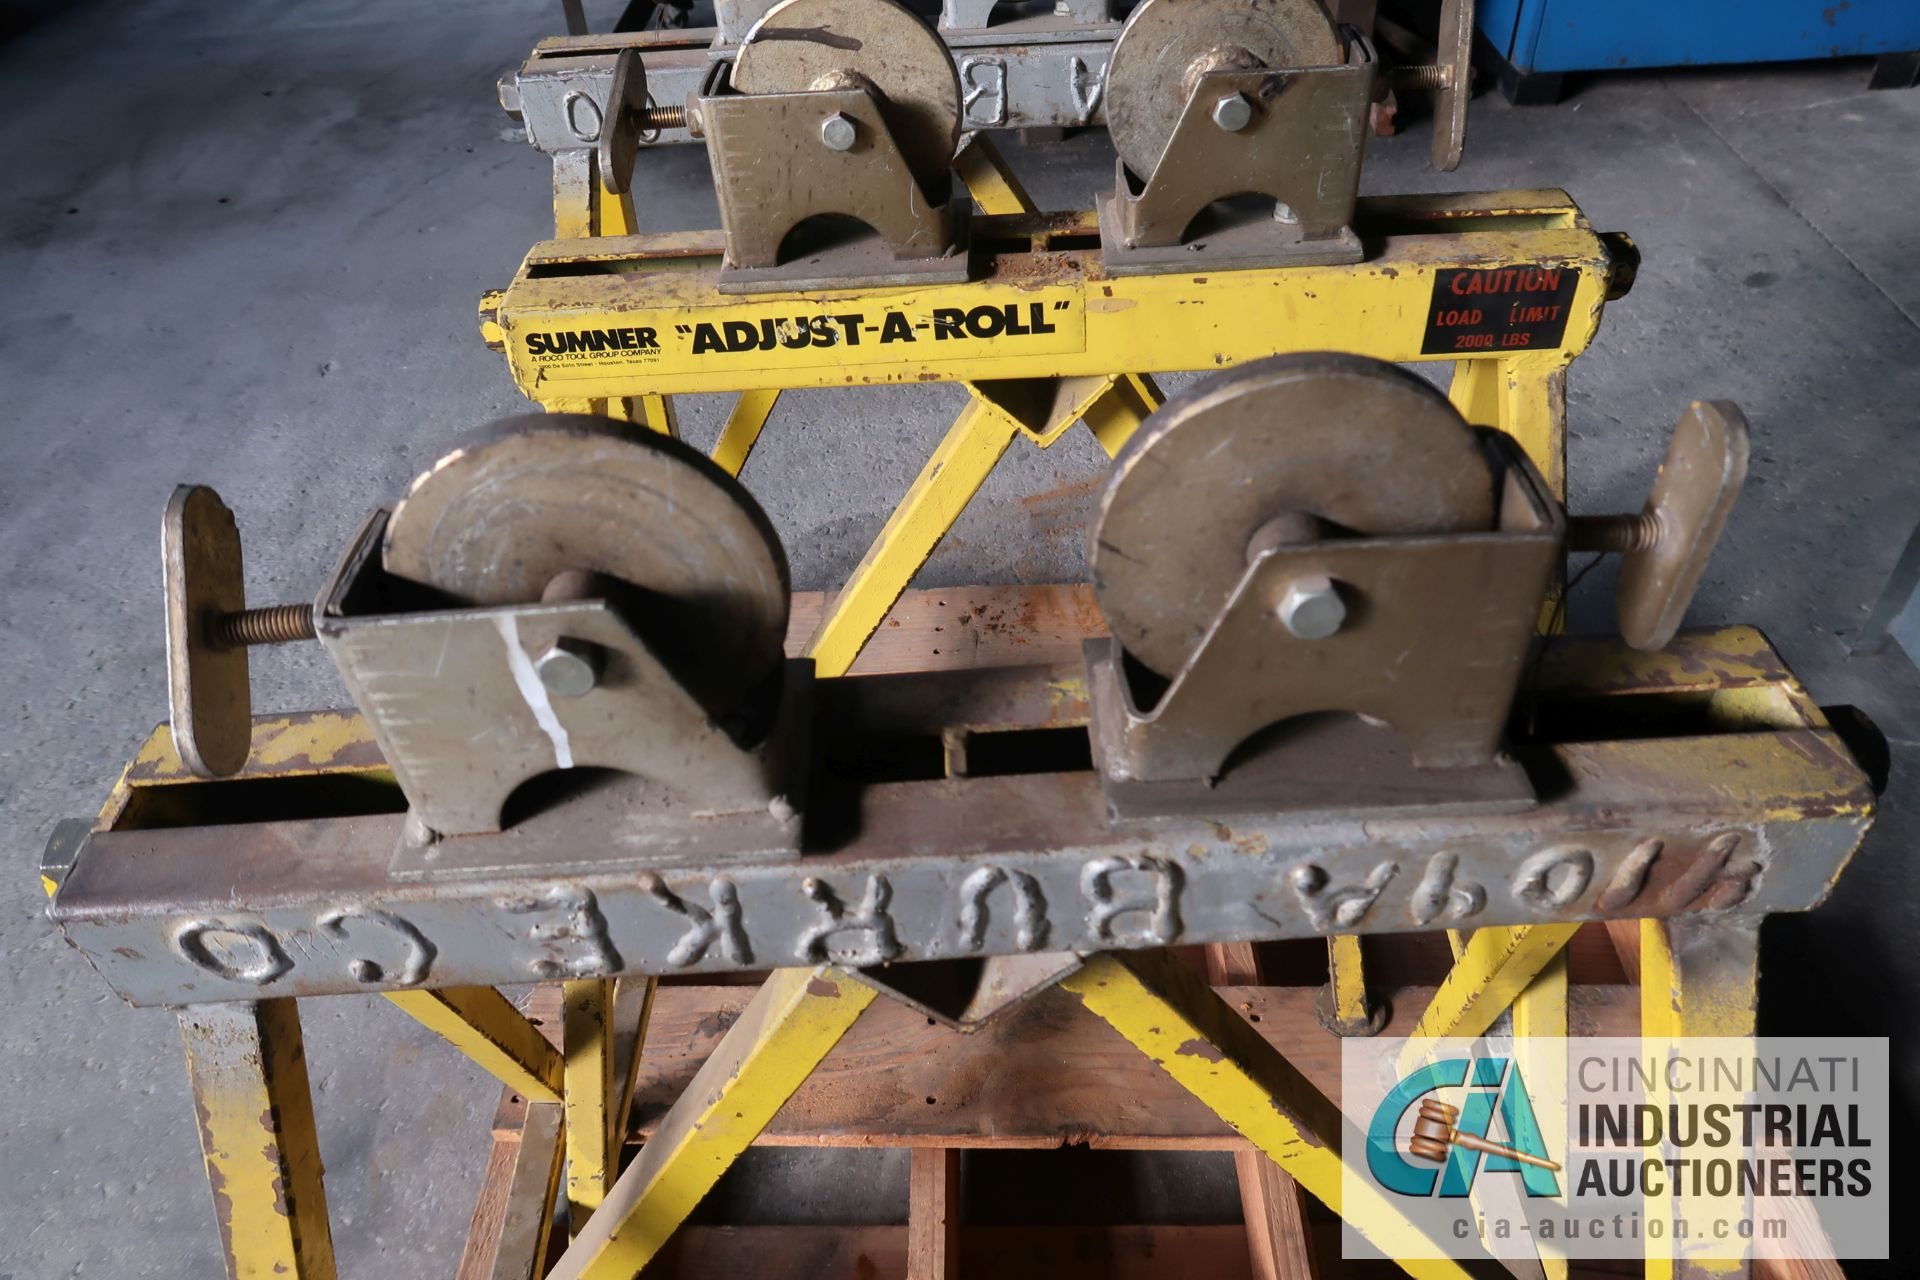 2,000 LB. CAPACITY SUMNER ADJUST-A ROLL STEEL WHEEL ROLLER STANDS - Image 2 of 3